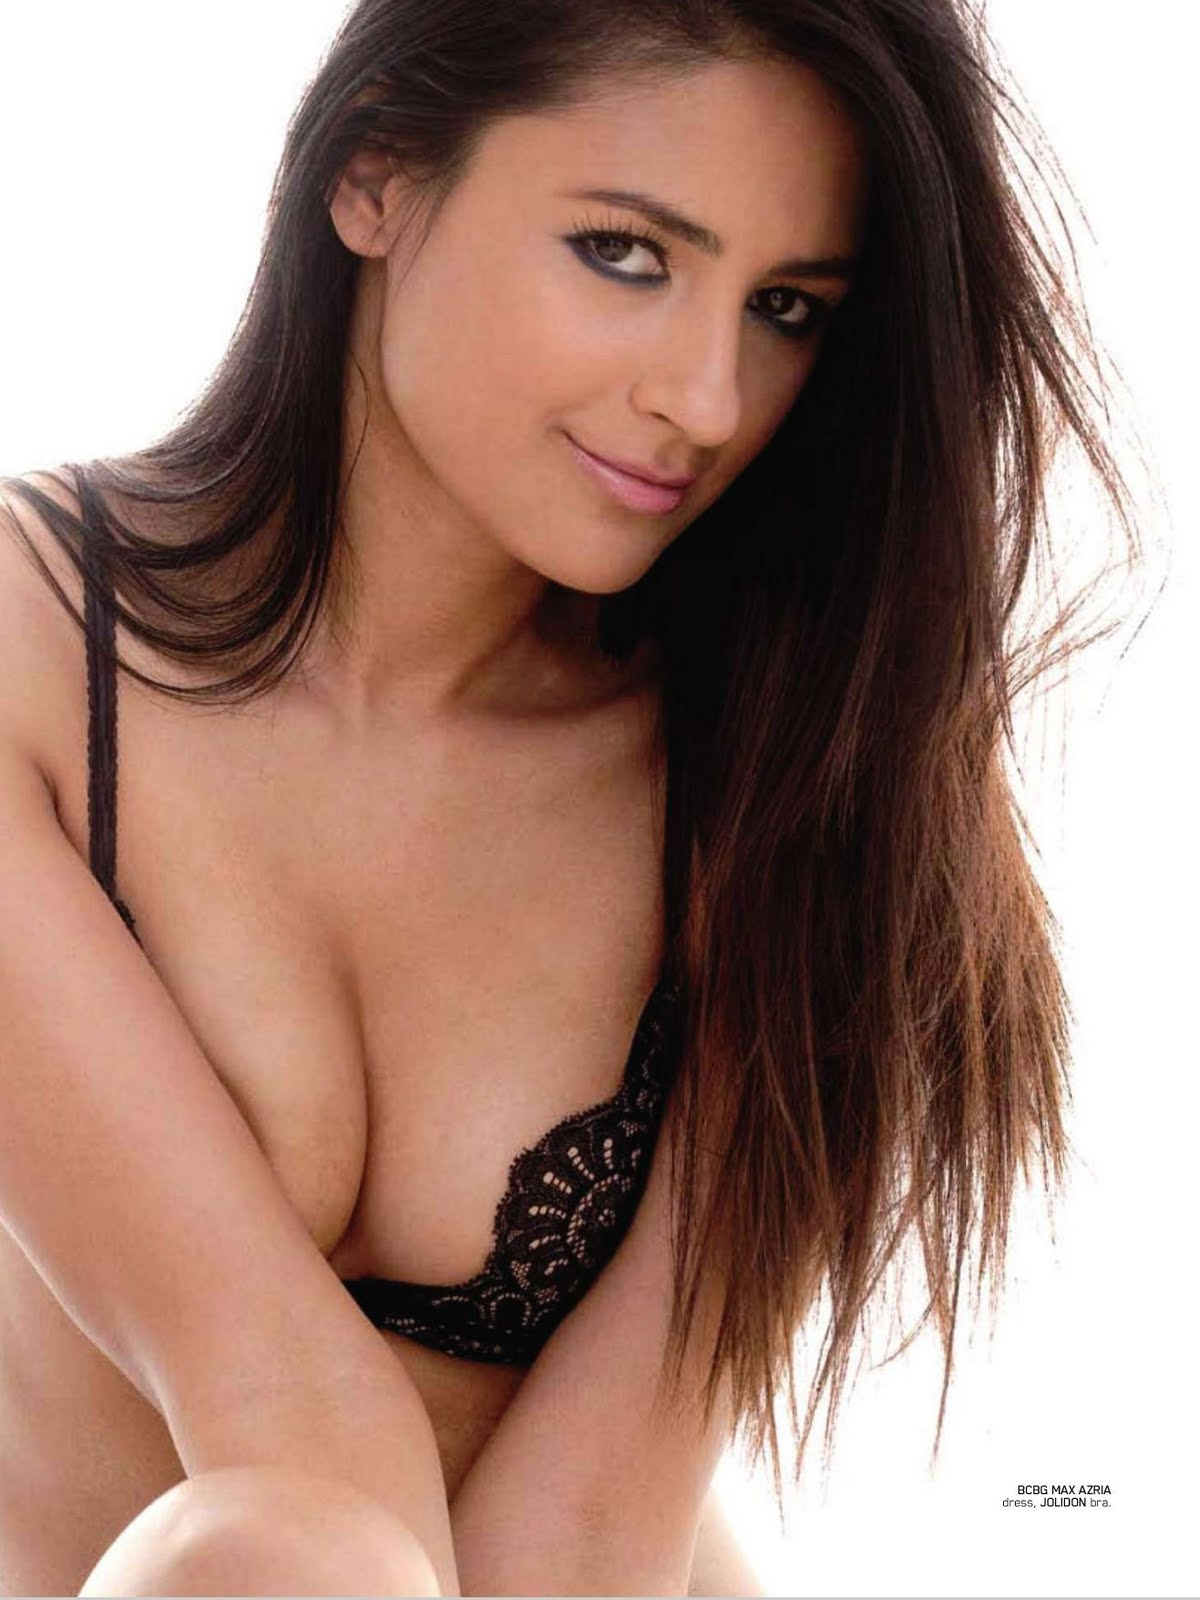 Our current news aruna shields hot maxim india december for Best online photo gallery